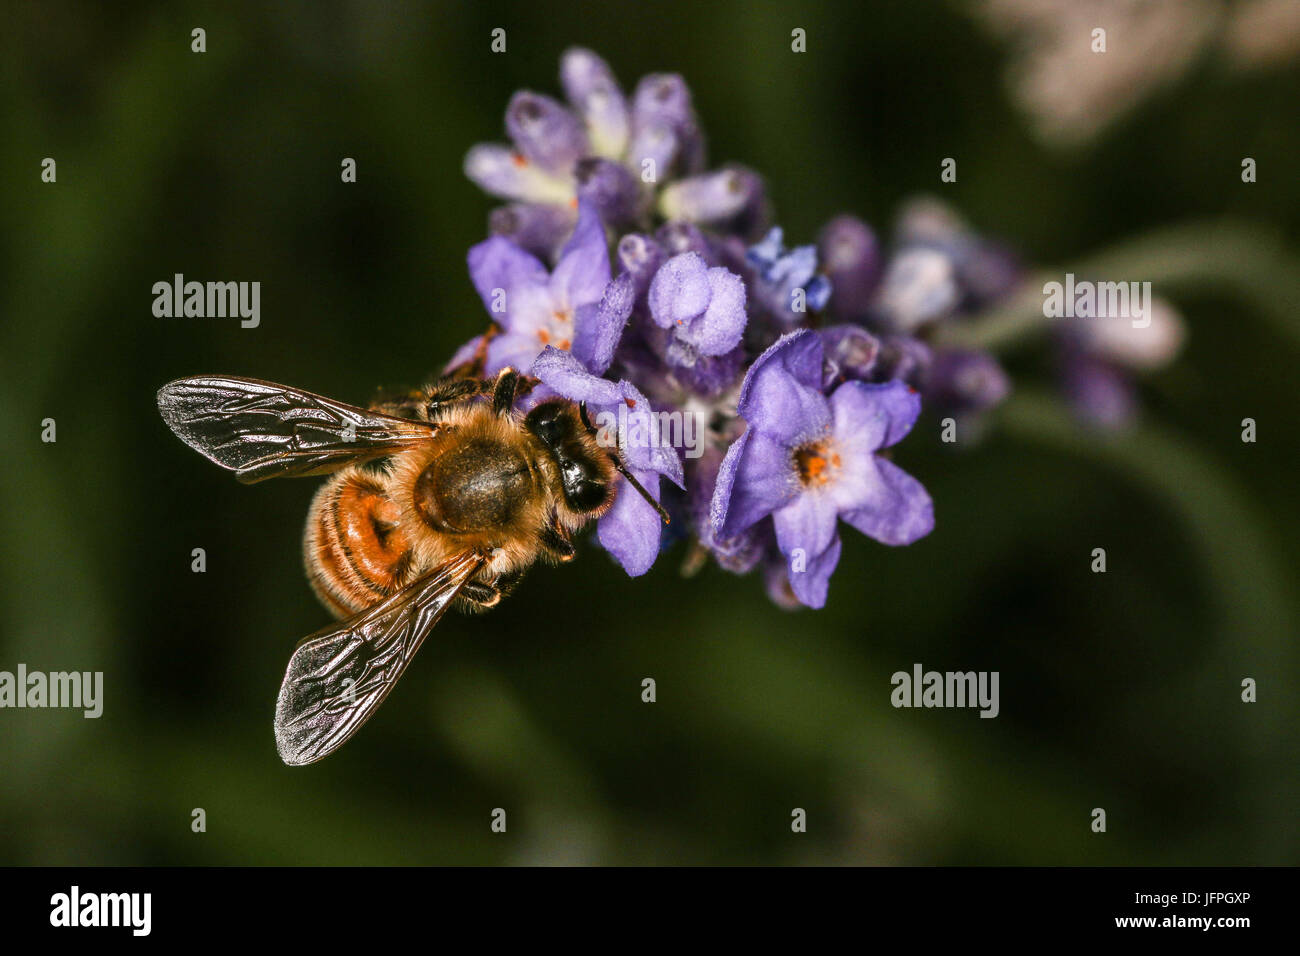 Close up Honey Bee collecting pollen from an open flower on a lavender bush, Shepperton, England, U.K. Stock Photo